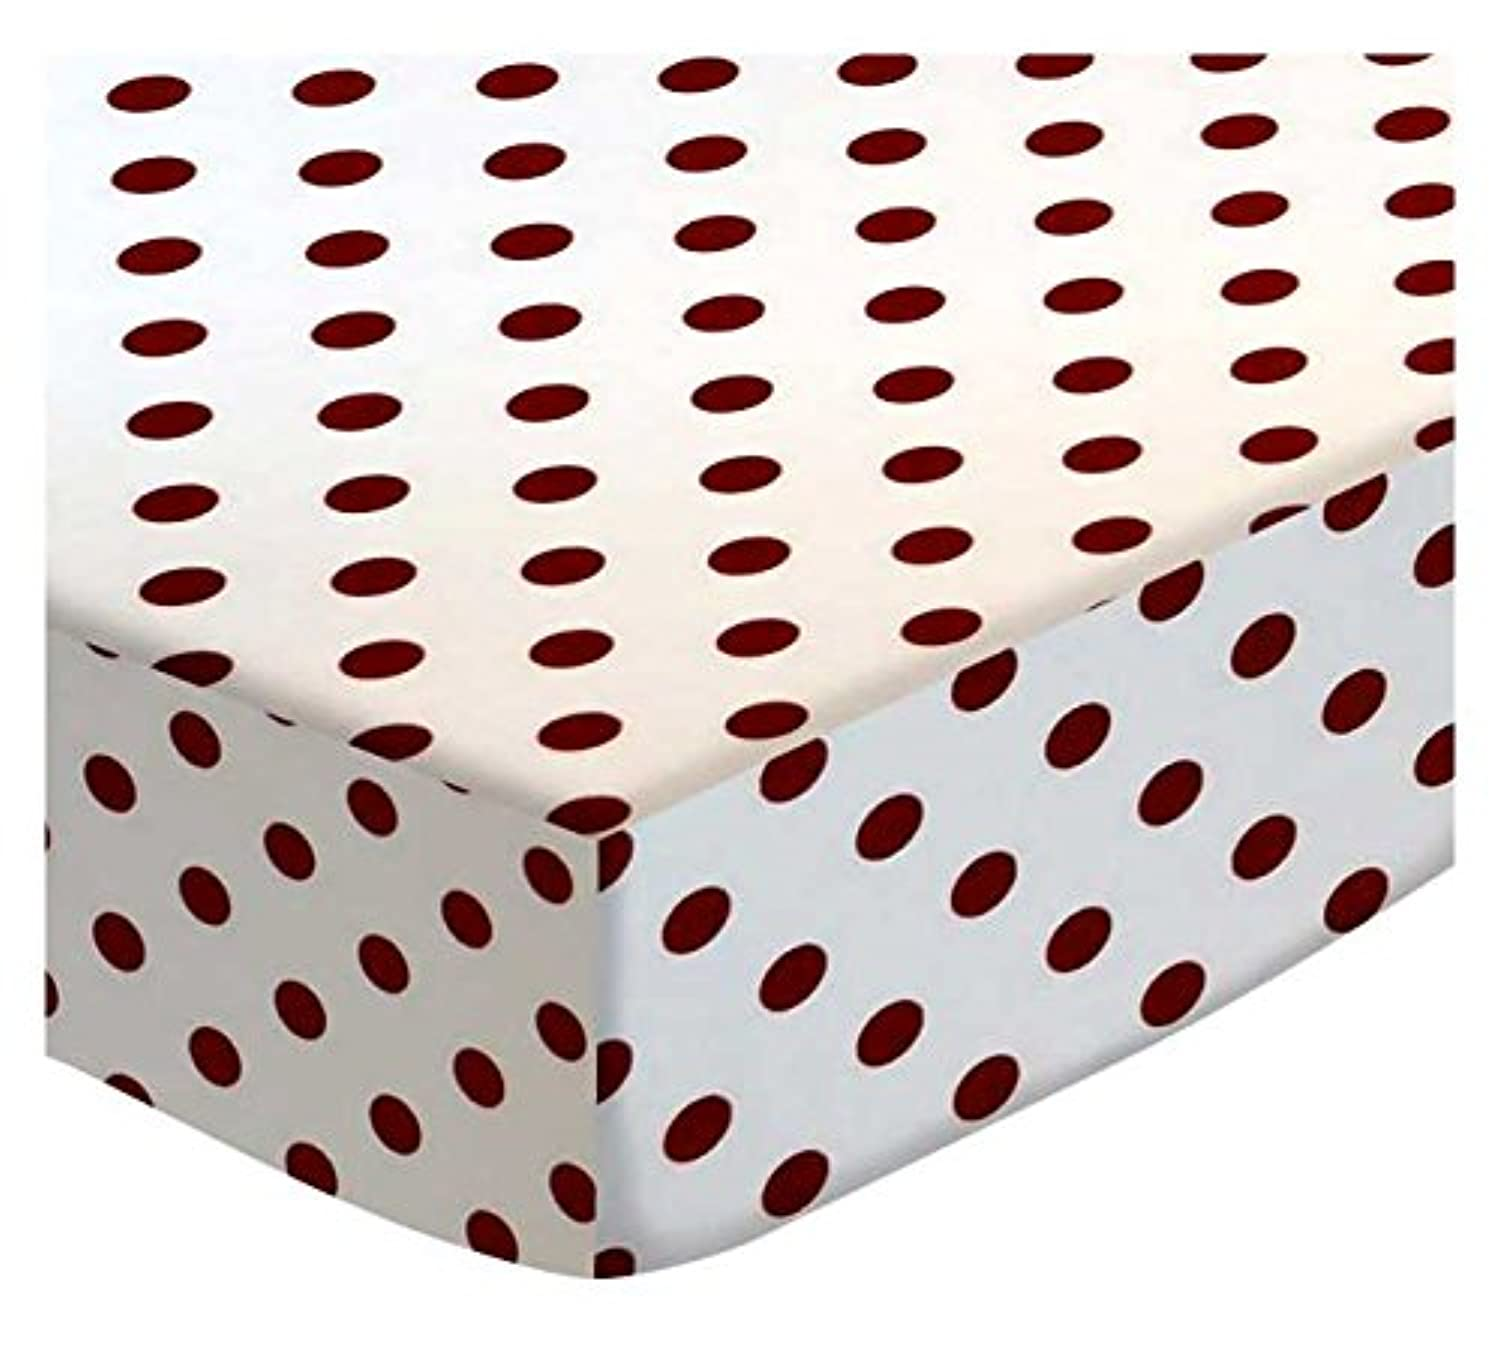 SheetWorld Extra Deep Fitted Portable / Mini Crib Sheet - Burgundy Polka Dots - Made In USA by sheetworld